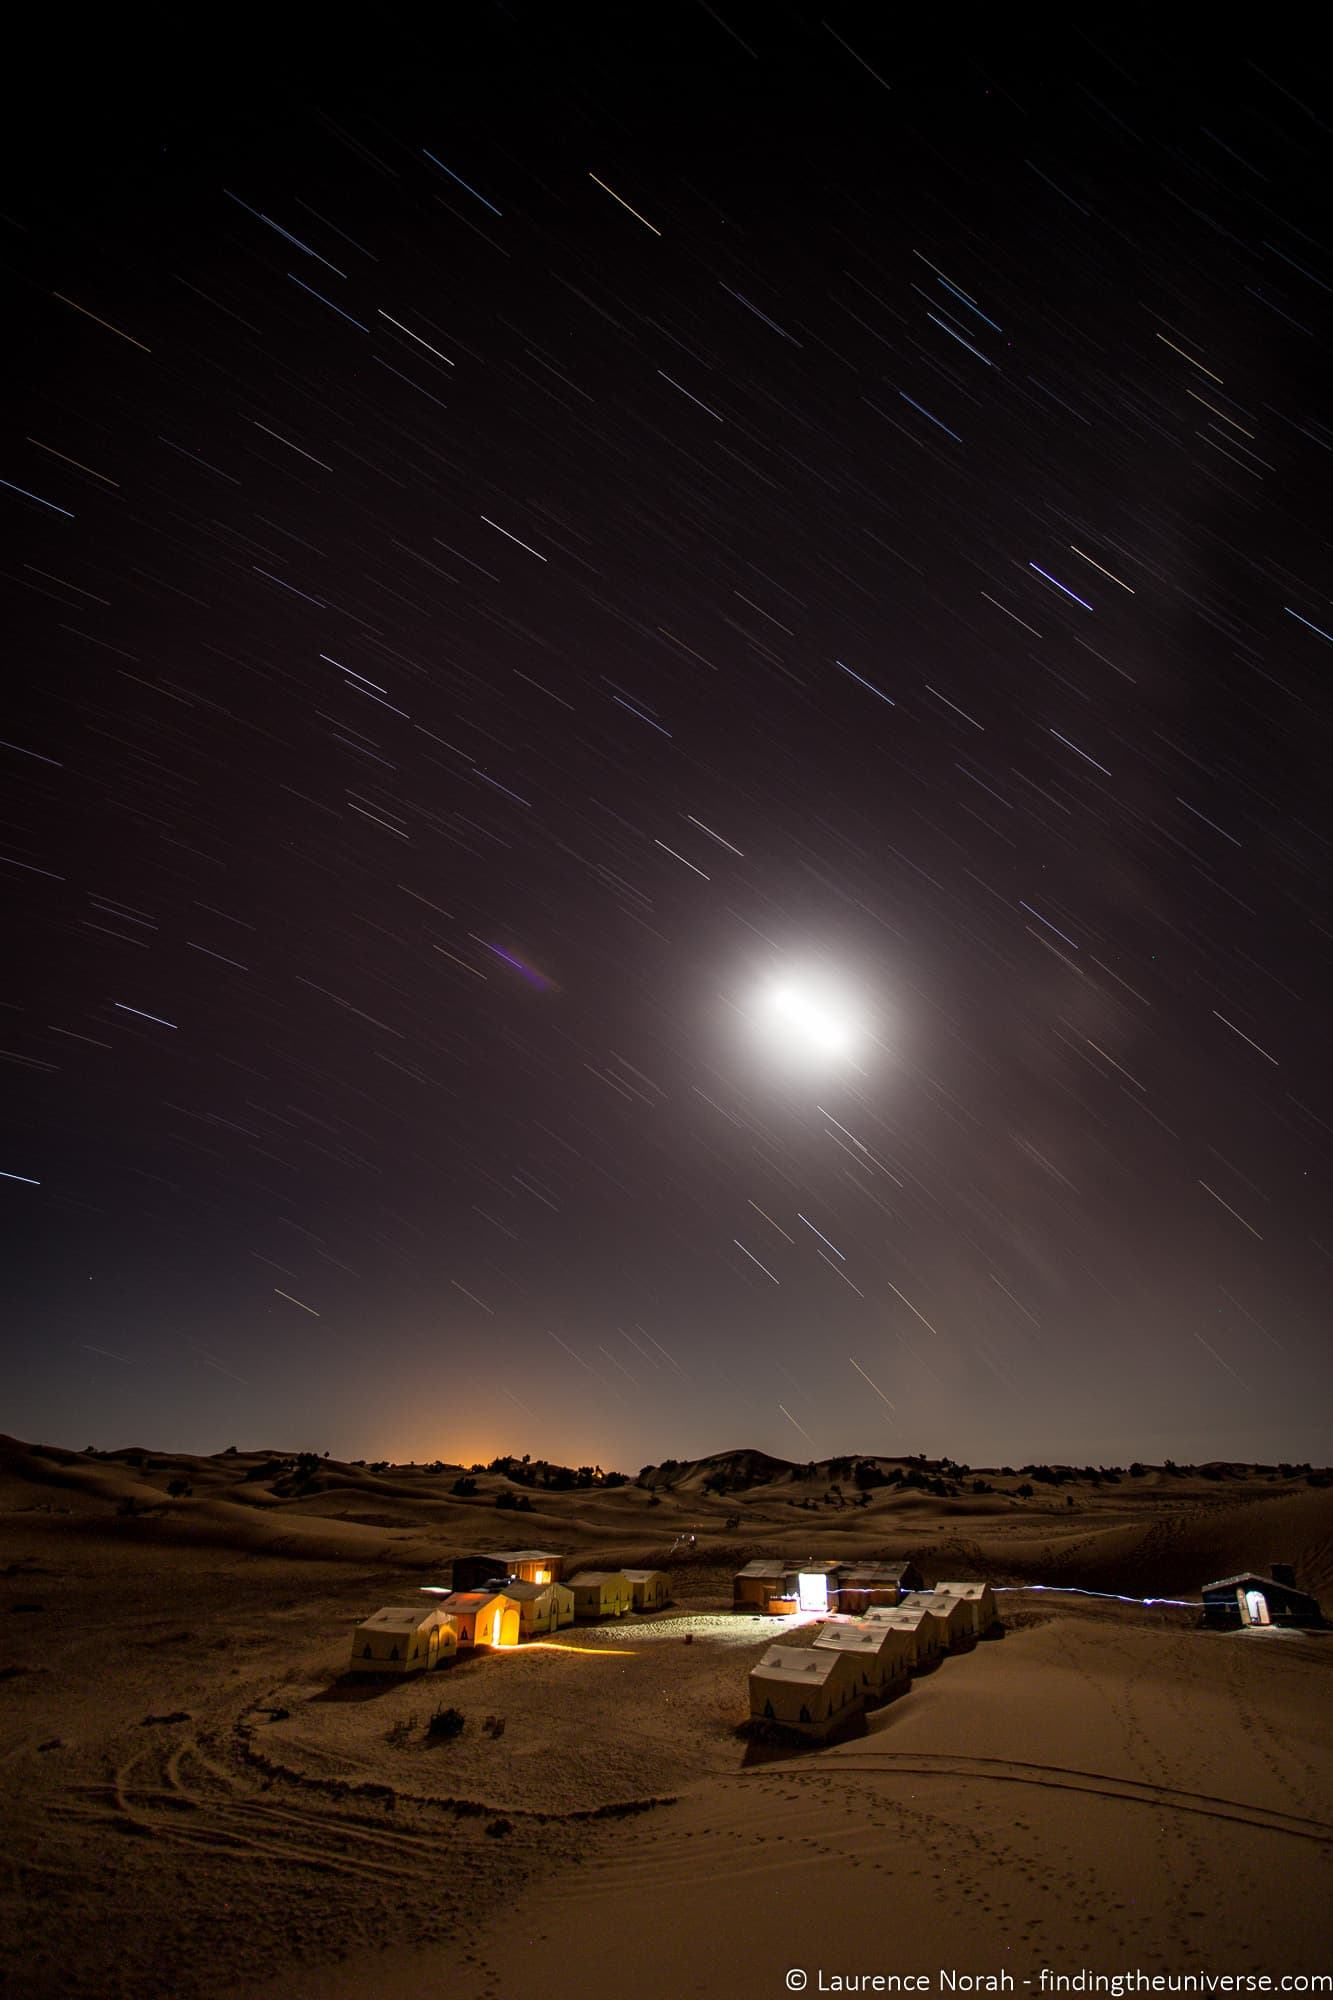 Stars in motion over Morocco